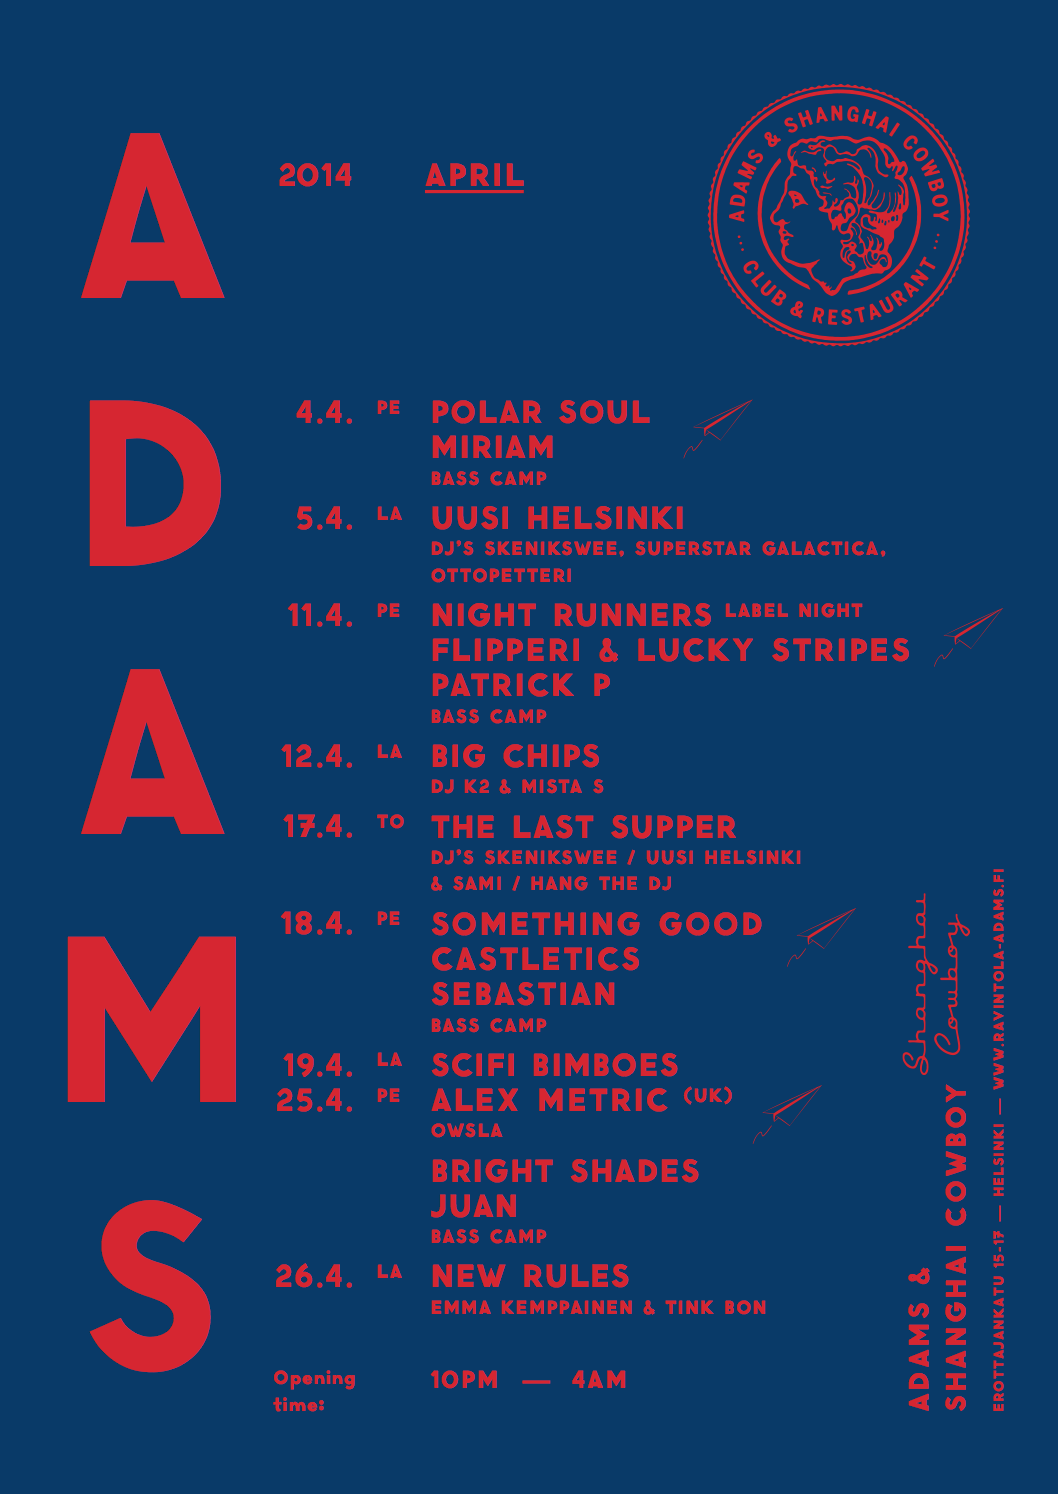 ADAMS Club U0026 Restaurant Website. Design: Tony Eräpuro #poster #music  #promotion